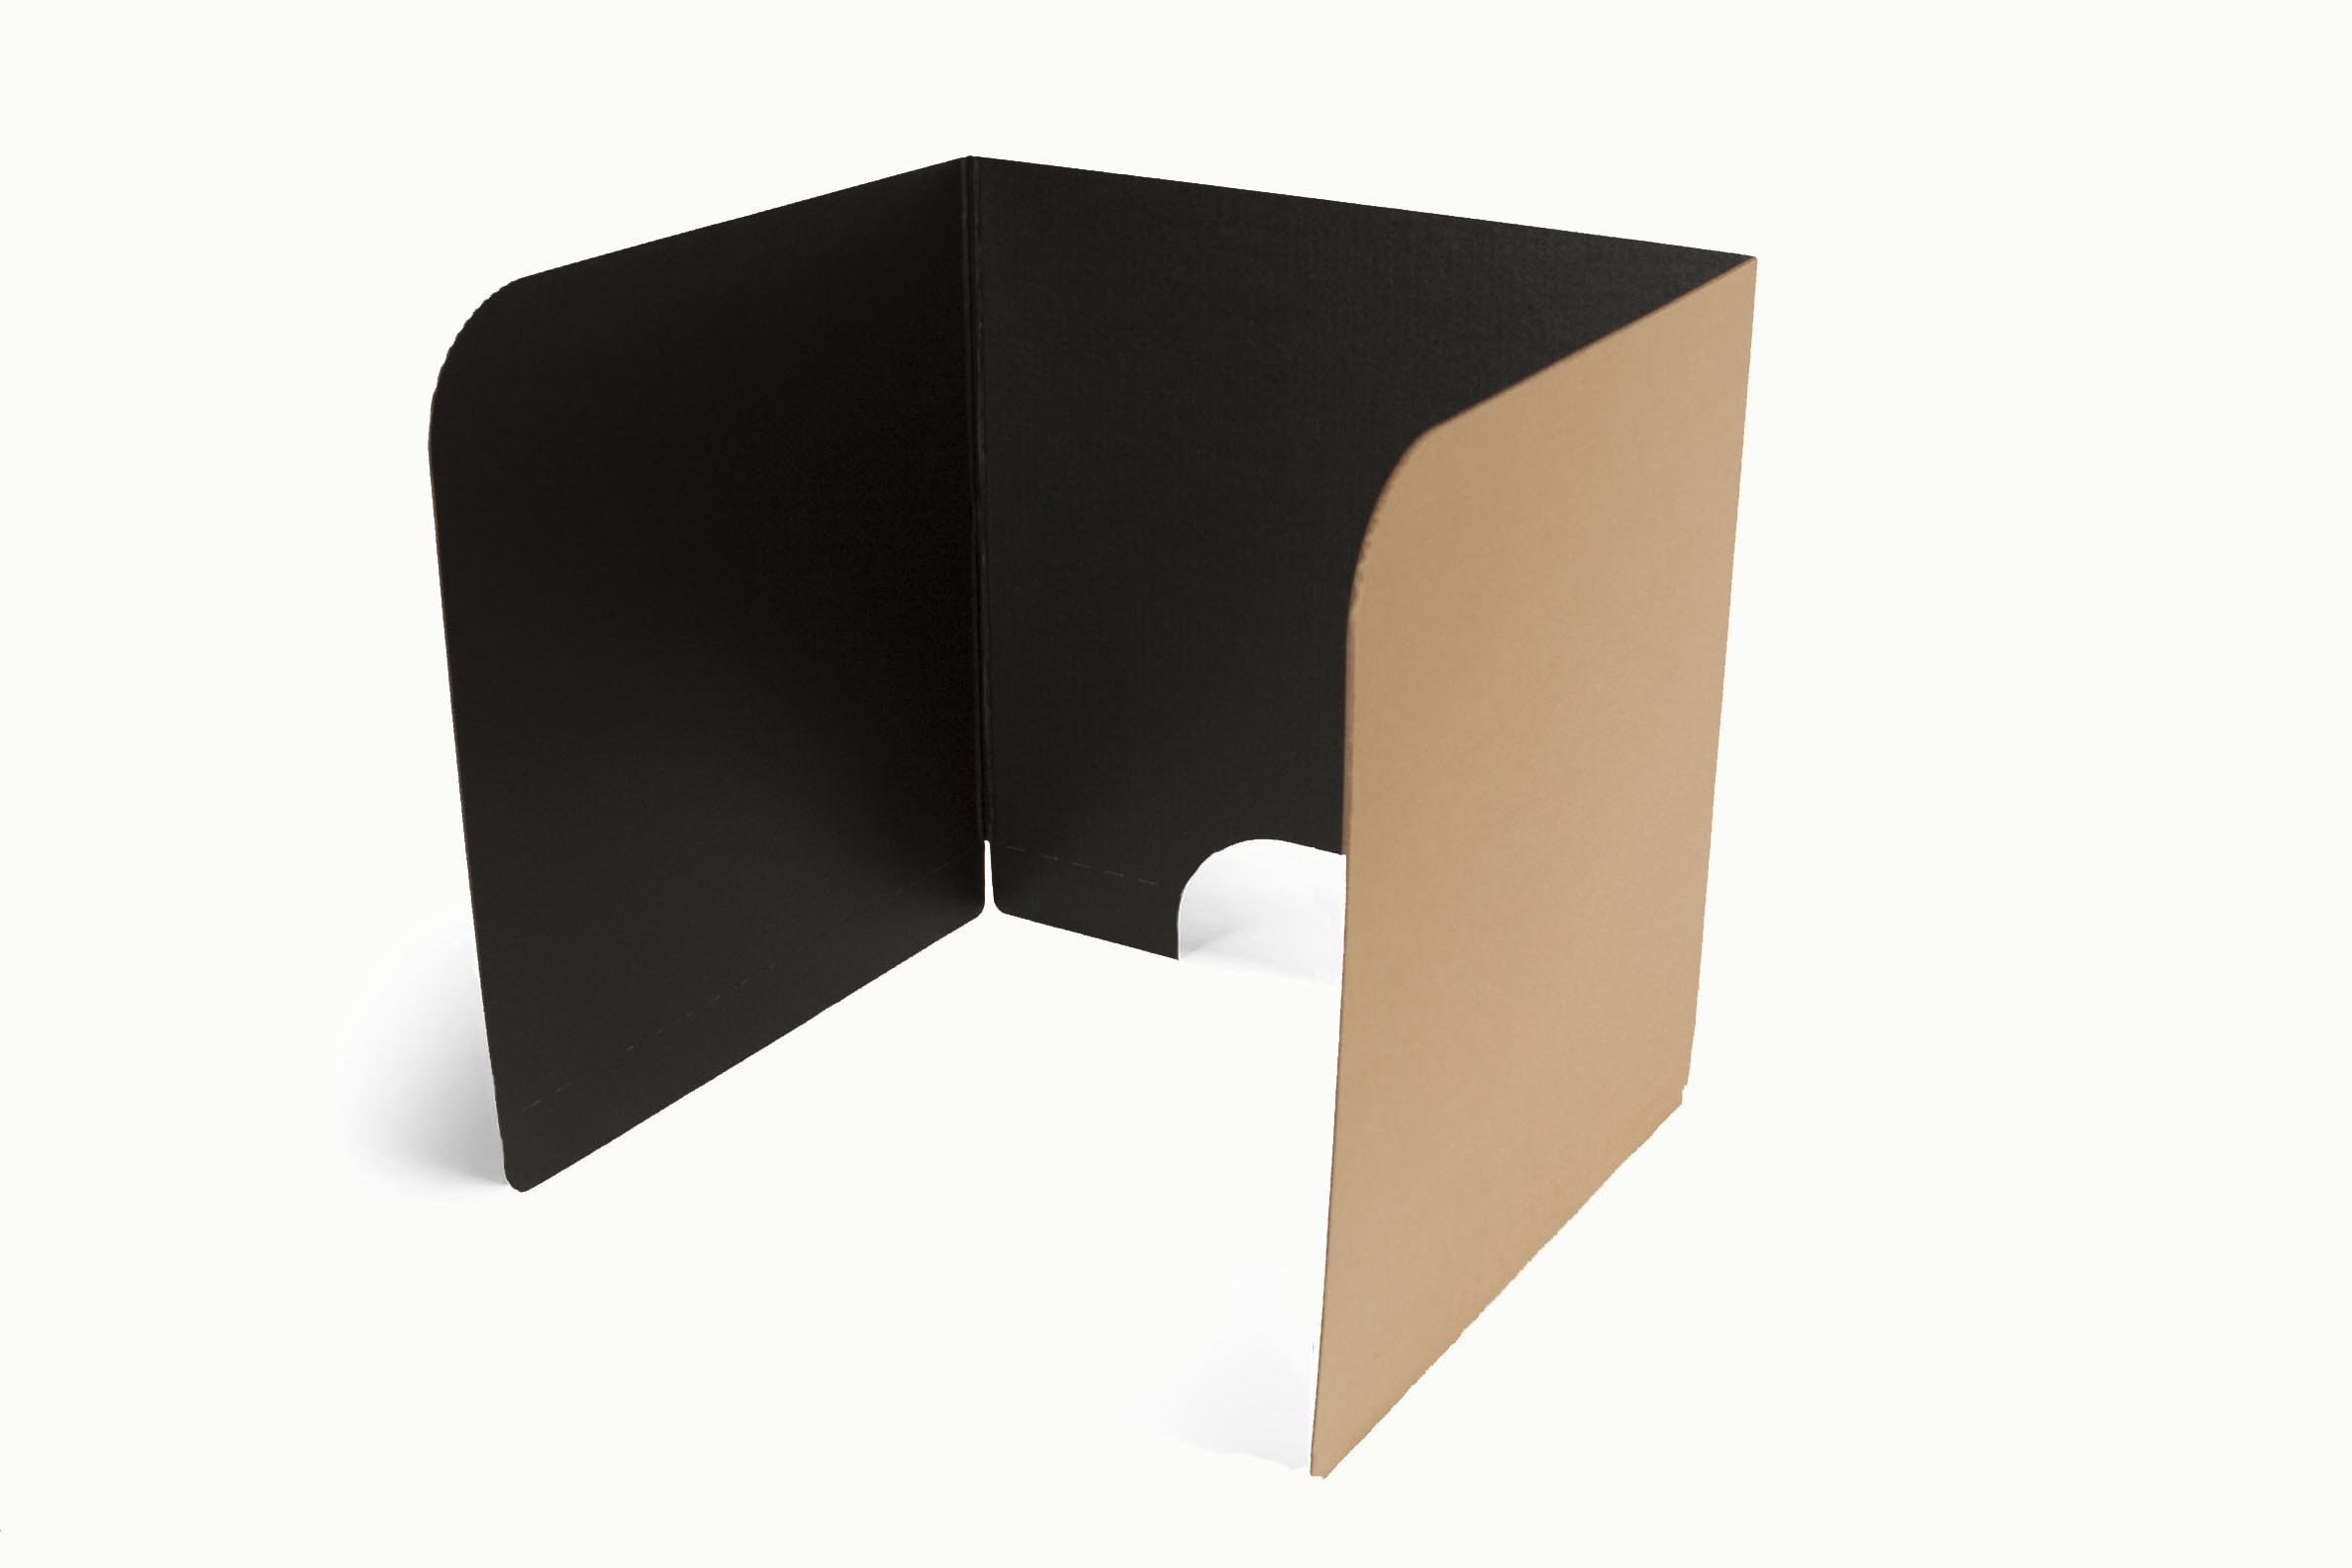 Classroom Products Voting Booth 20 Inch Tall Corrugated Cardboard Portable - Black - (Pack of 10)